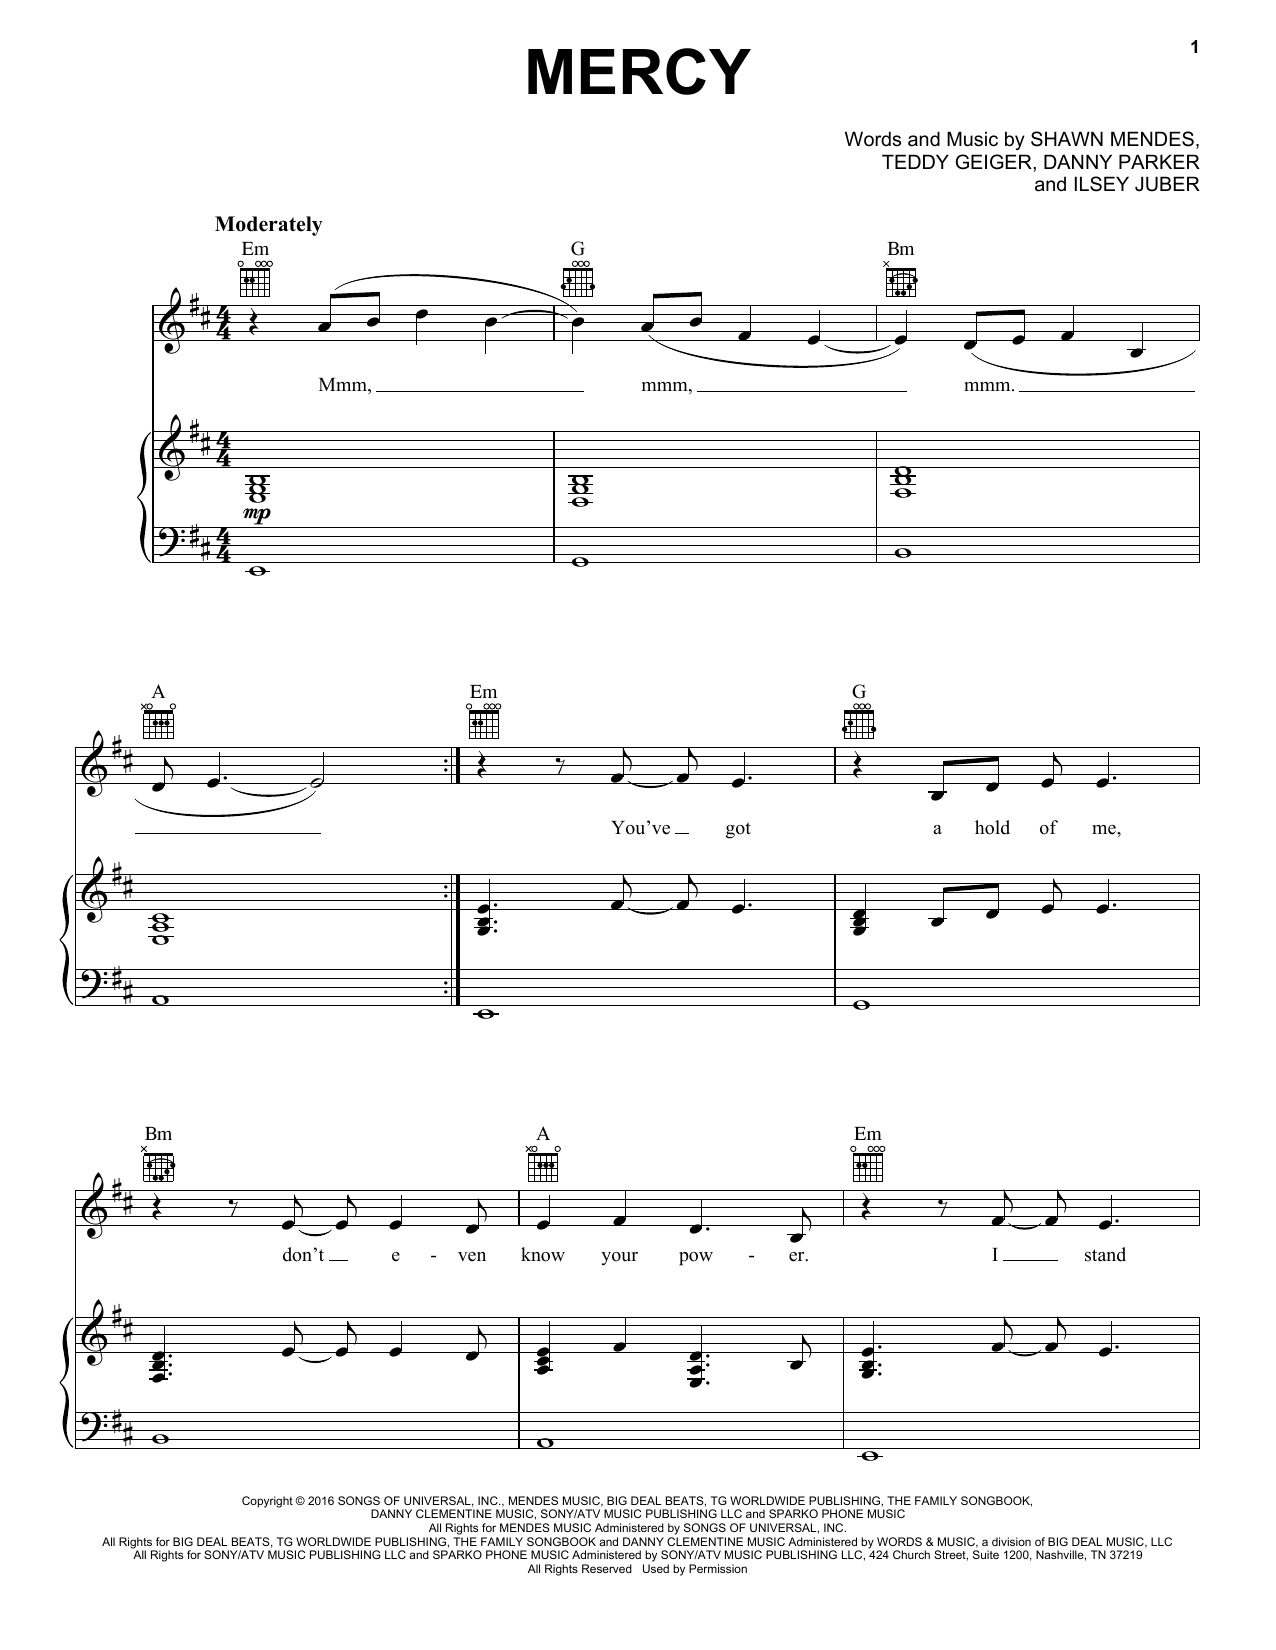 Sheet Music Digital Files To Print - Licensed Danny Parker